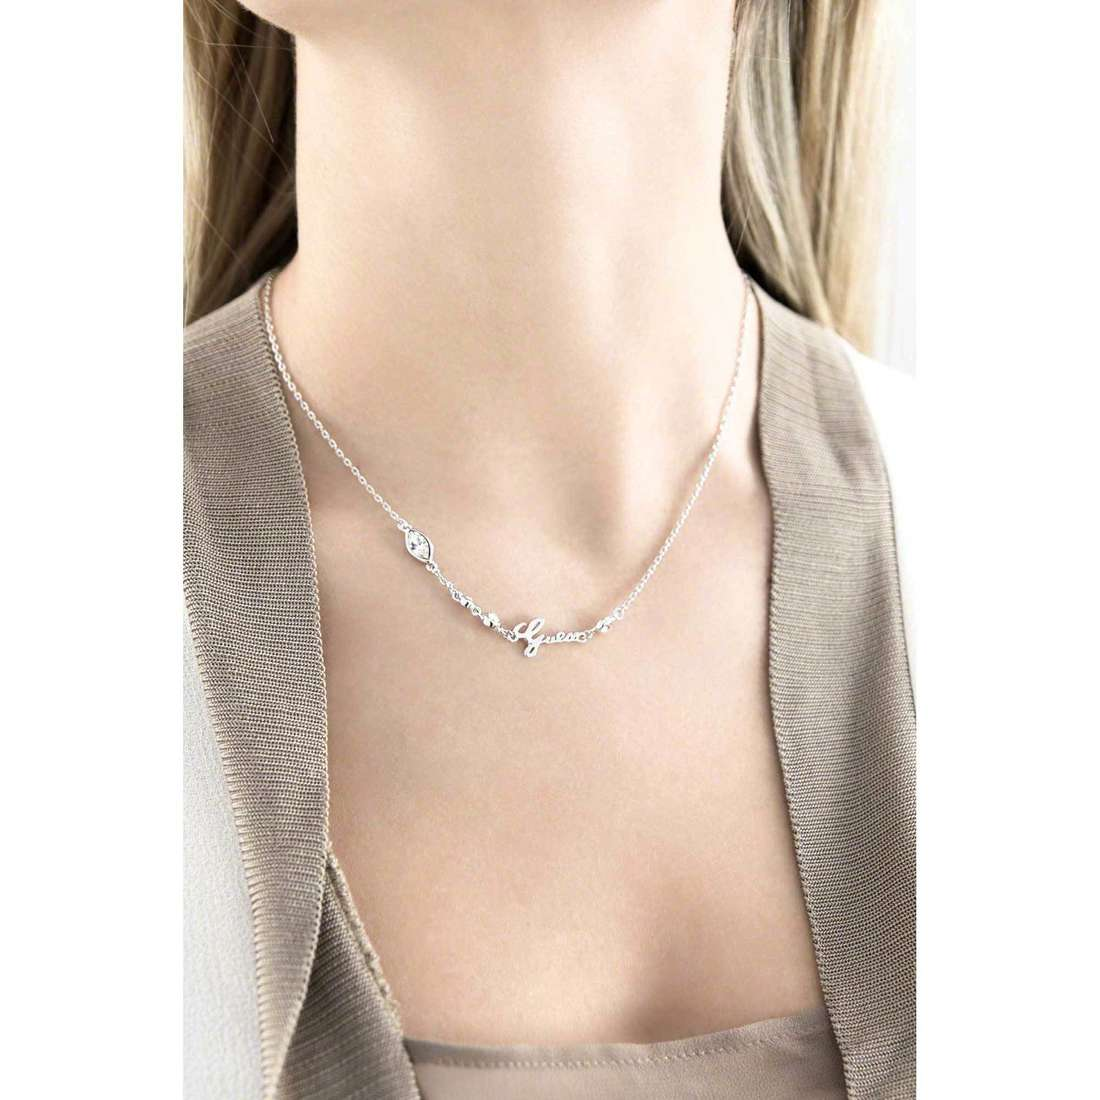 Guess necklaces Shiny Guess woman UBN61022 indosso